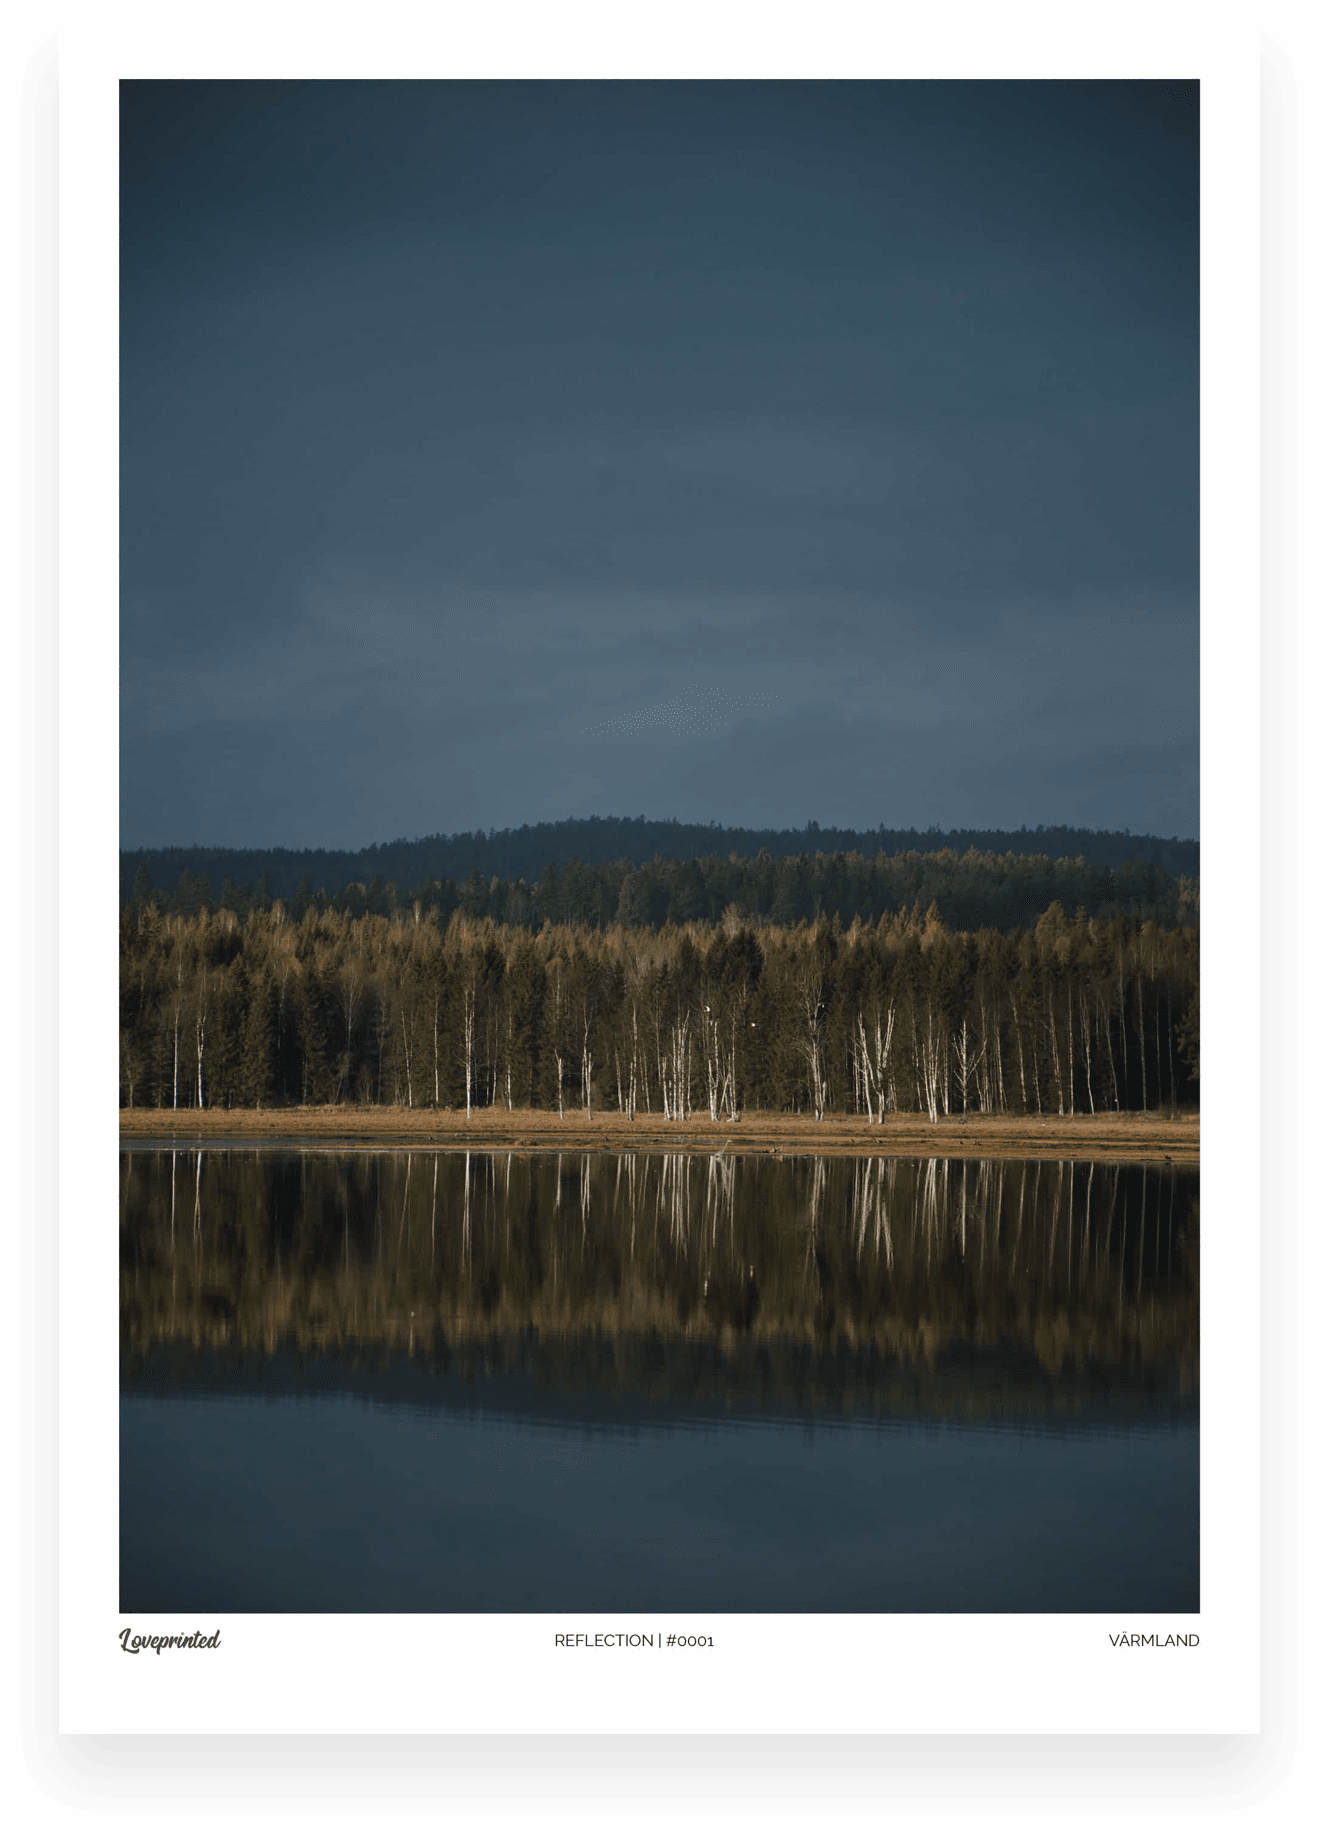 Reflection | An Image of a Swedish lake reflecting the tree line made by Loveprinted